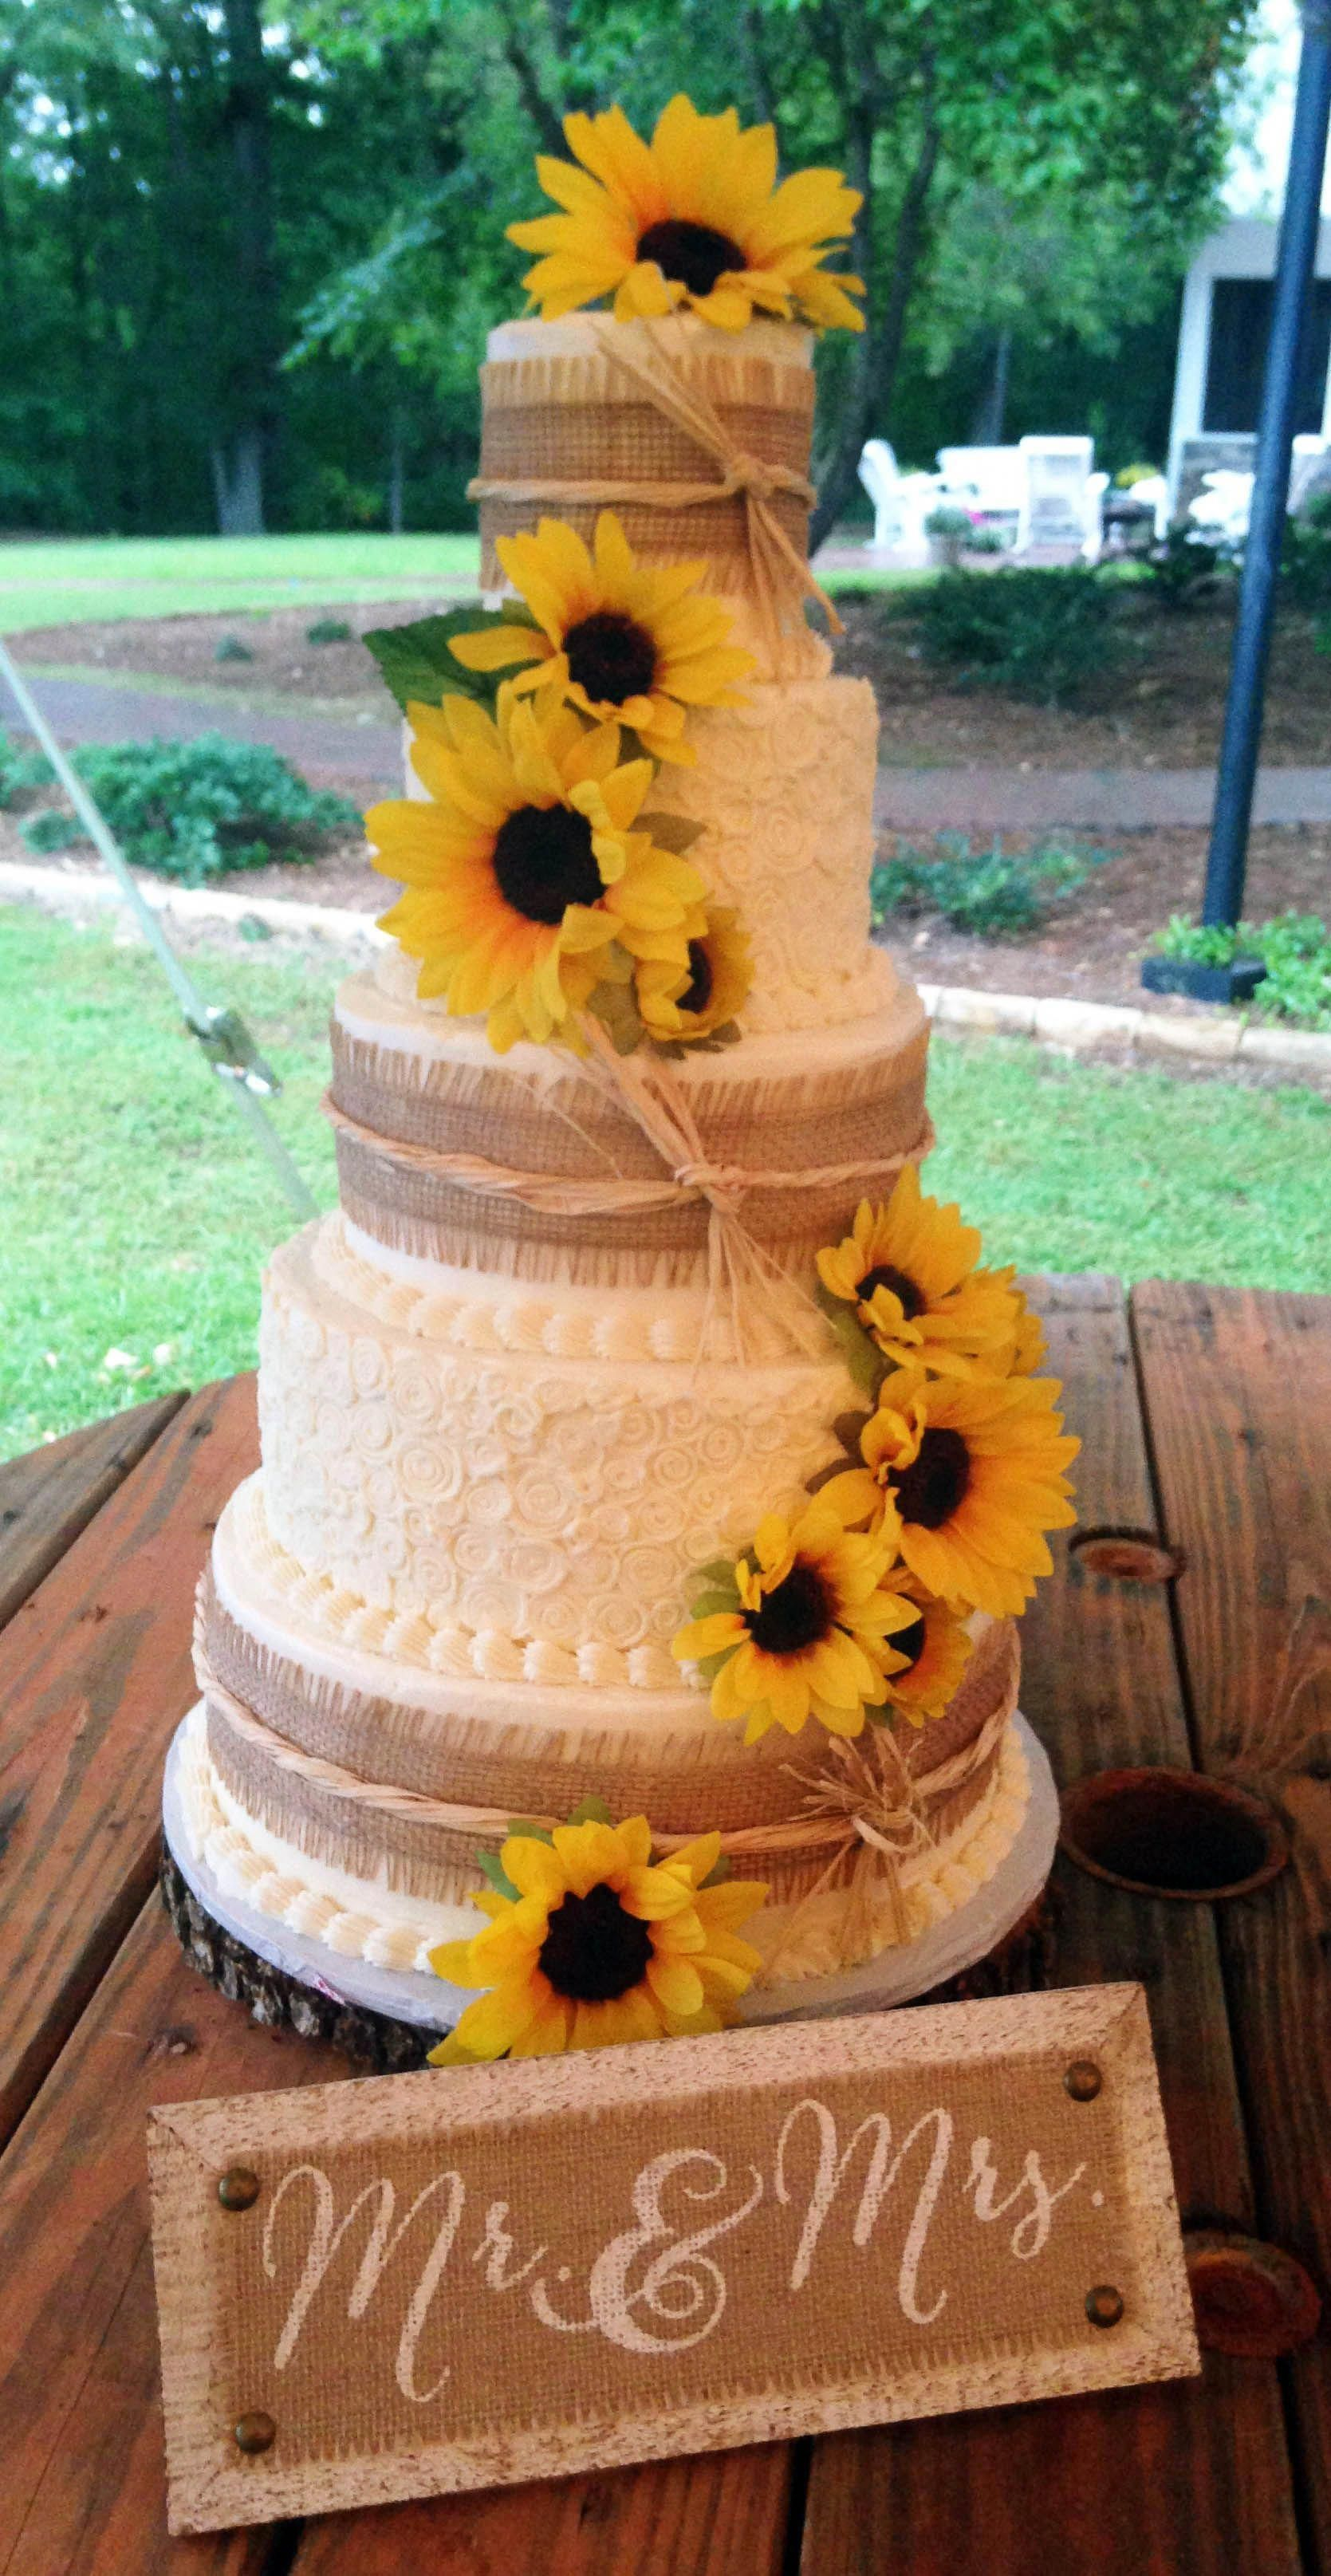 Rustic country wedding cake adorned with golden sunflowers   blismcdonough blisscakes blissweddingcake sunflowerweddingcake rusticweddingcake is part of Country wedding cakes -